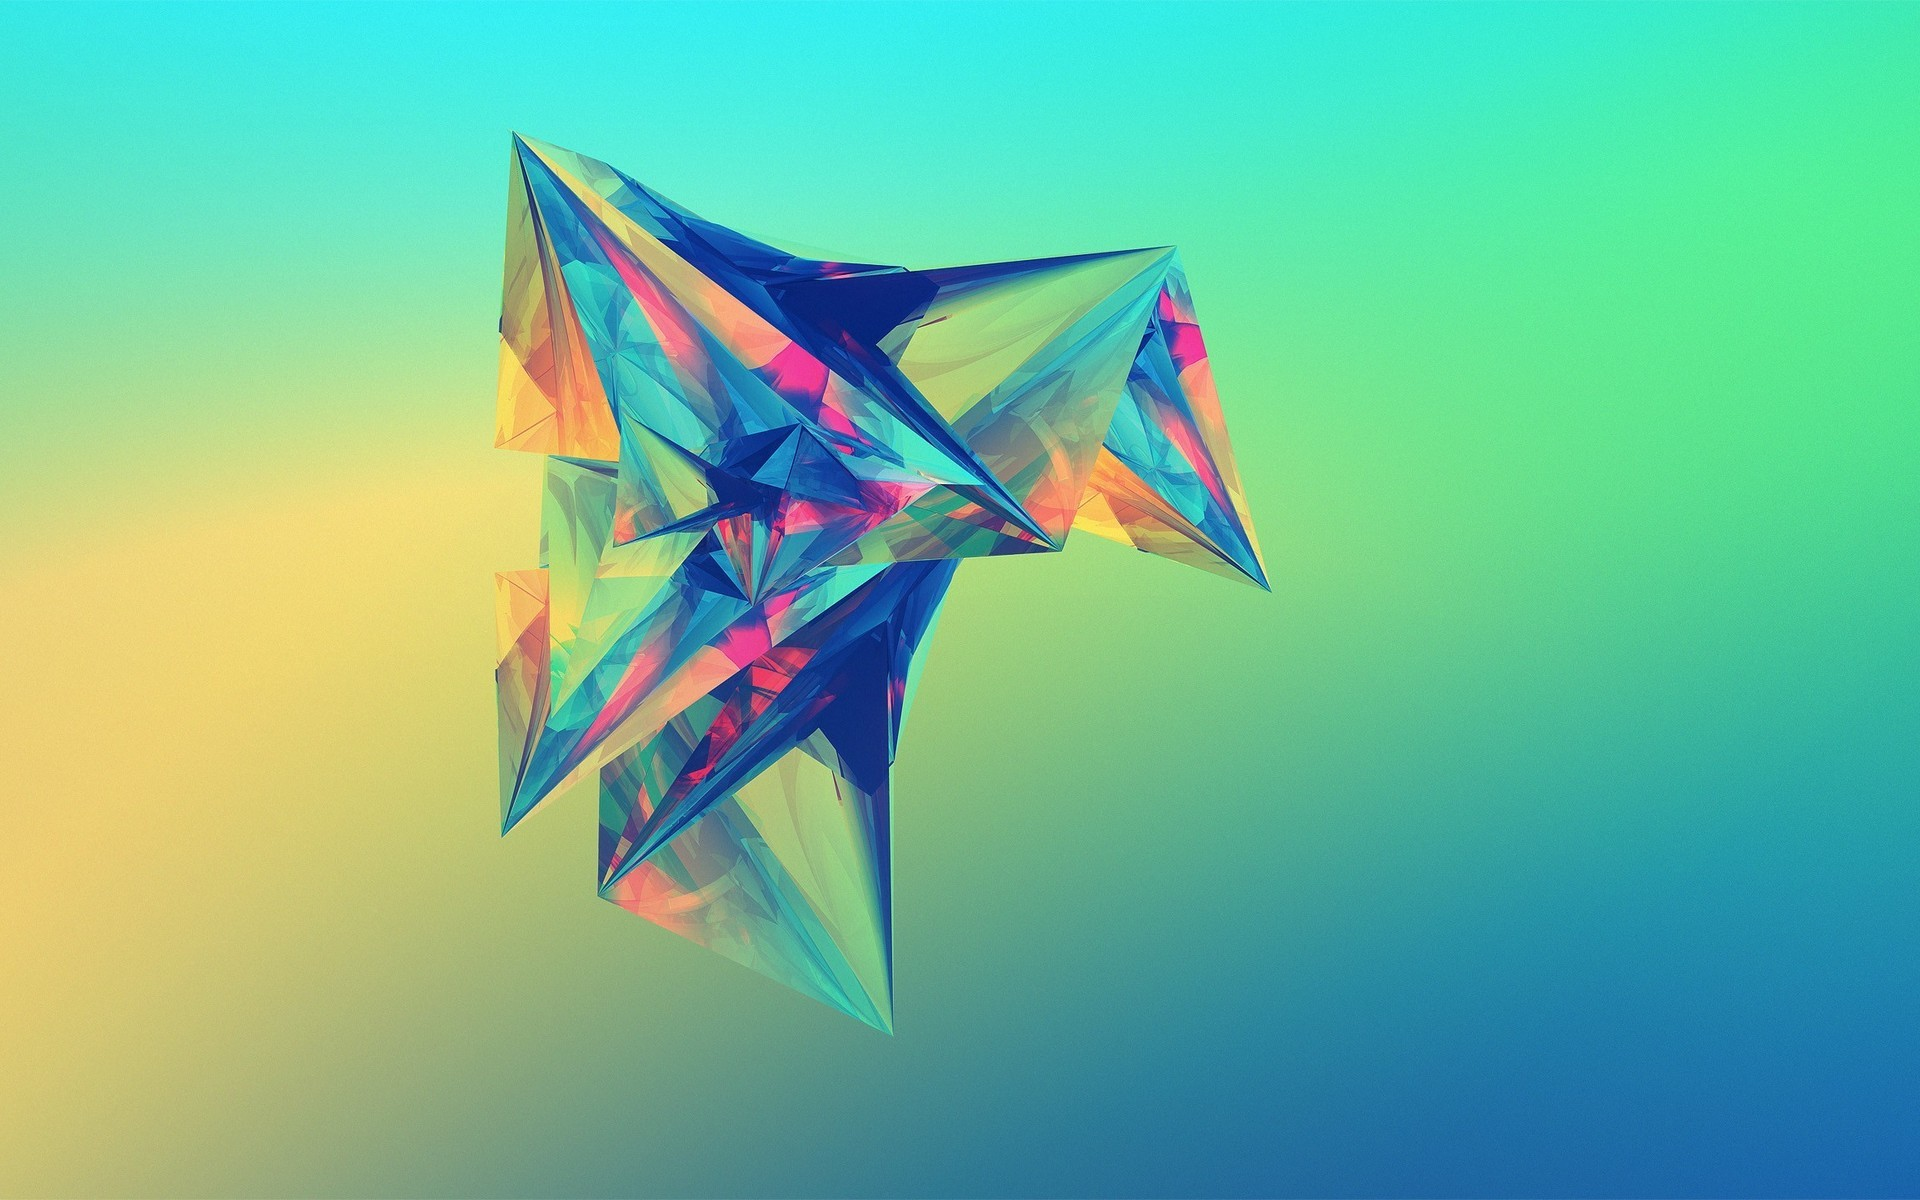 Res: 1920x1200, 3D Polygons Shapes